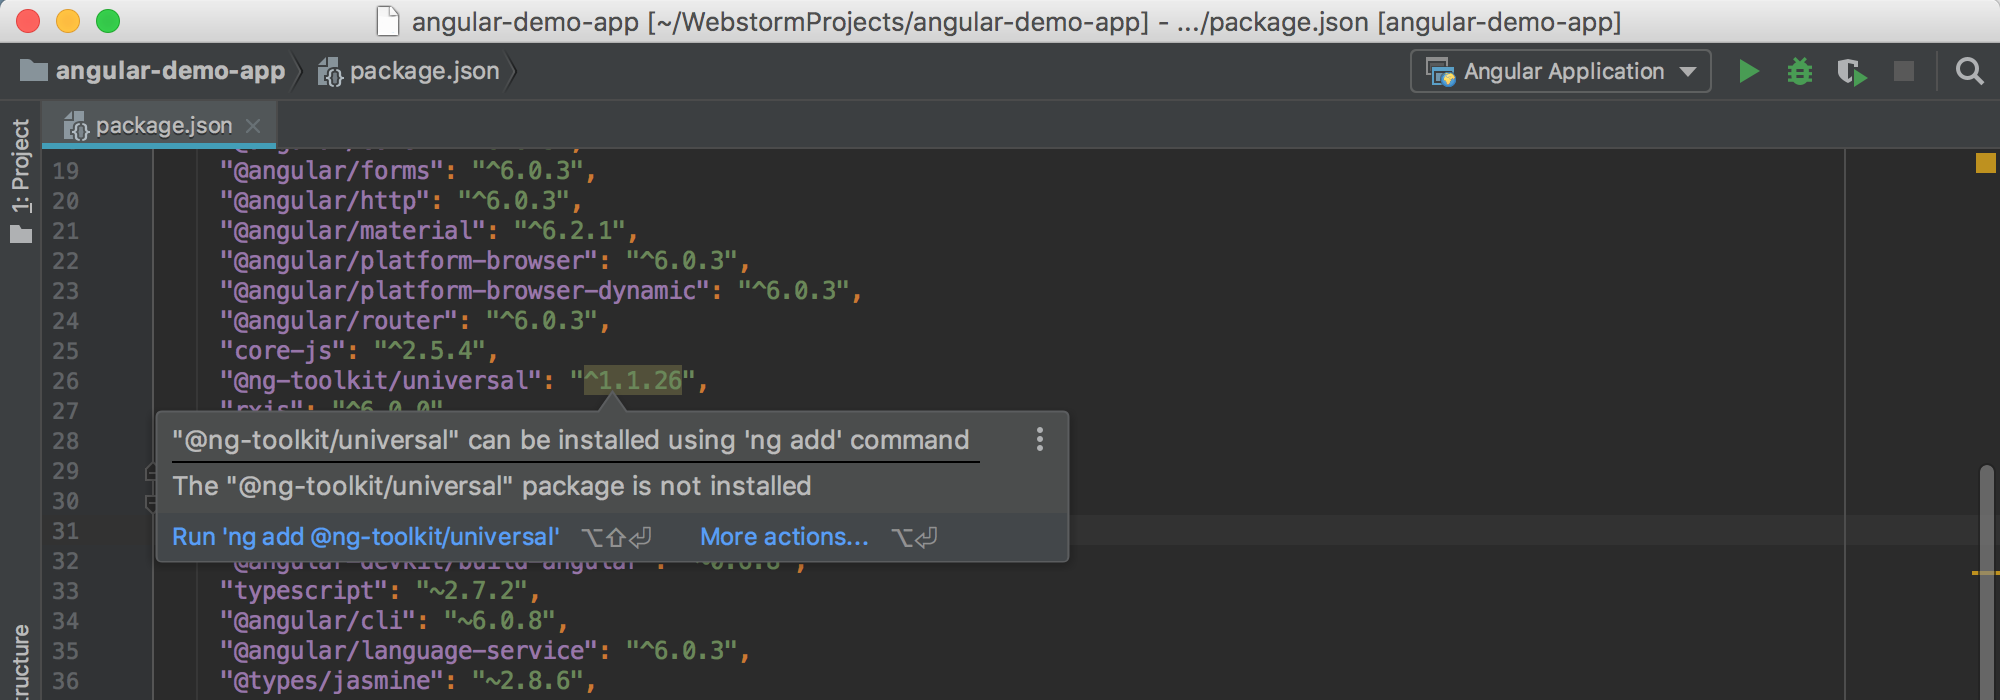 PyCharm suggests adding a dependency with ng add